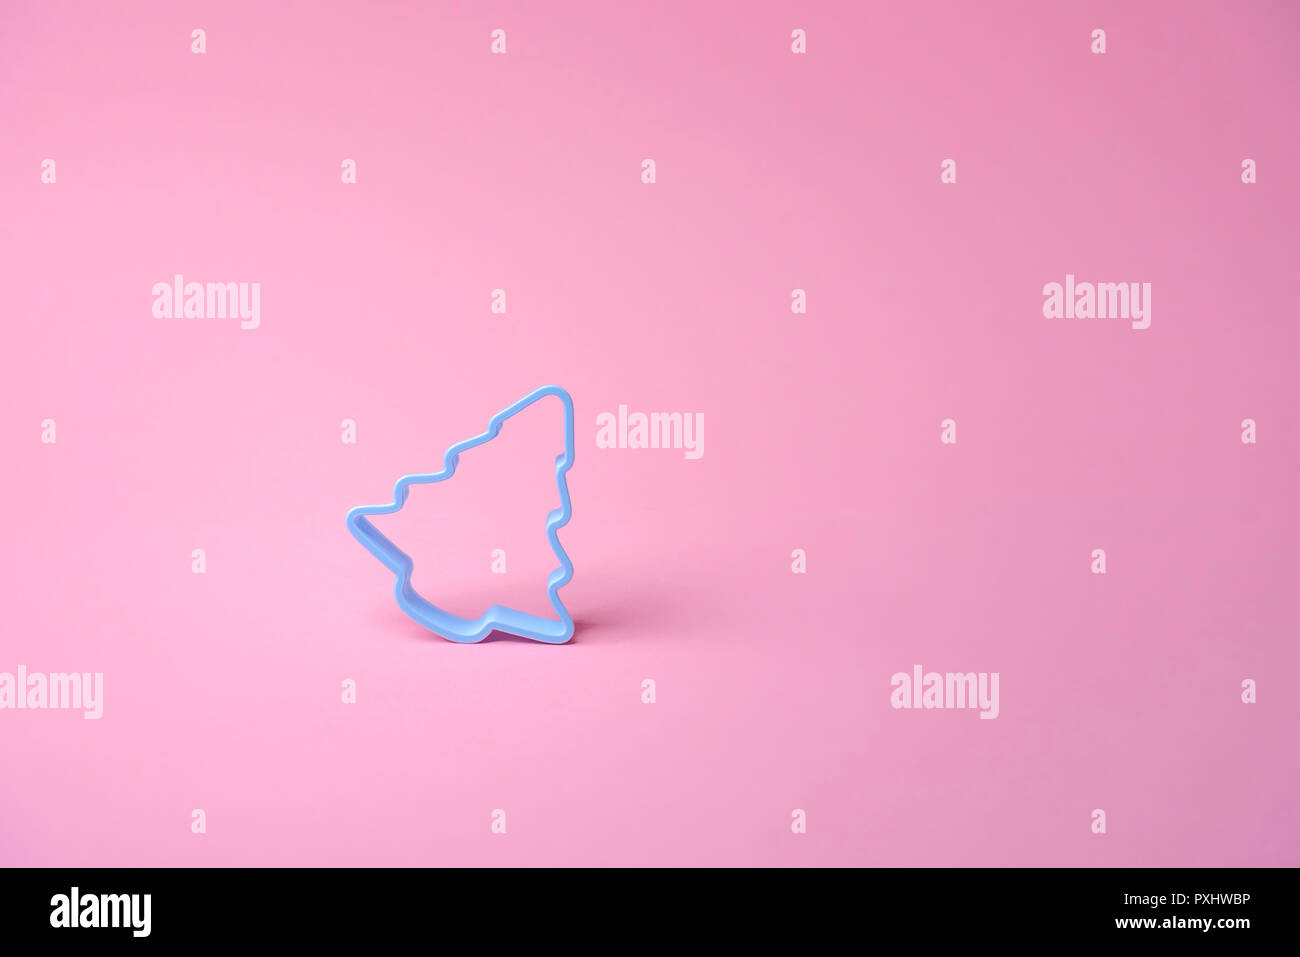 Single blue cookies cutter in shape of a Christmas tree, on a pink background. Xmas baking concept. Minimalist culinary image. - Stock Image